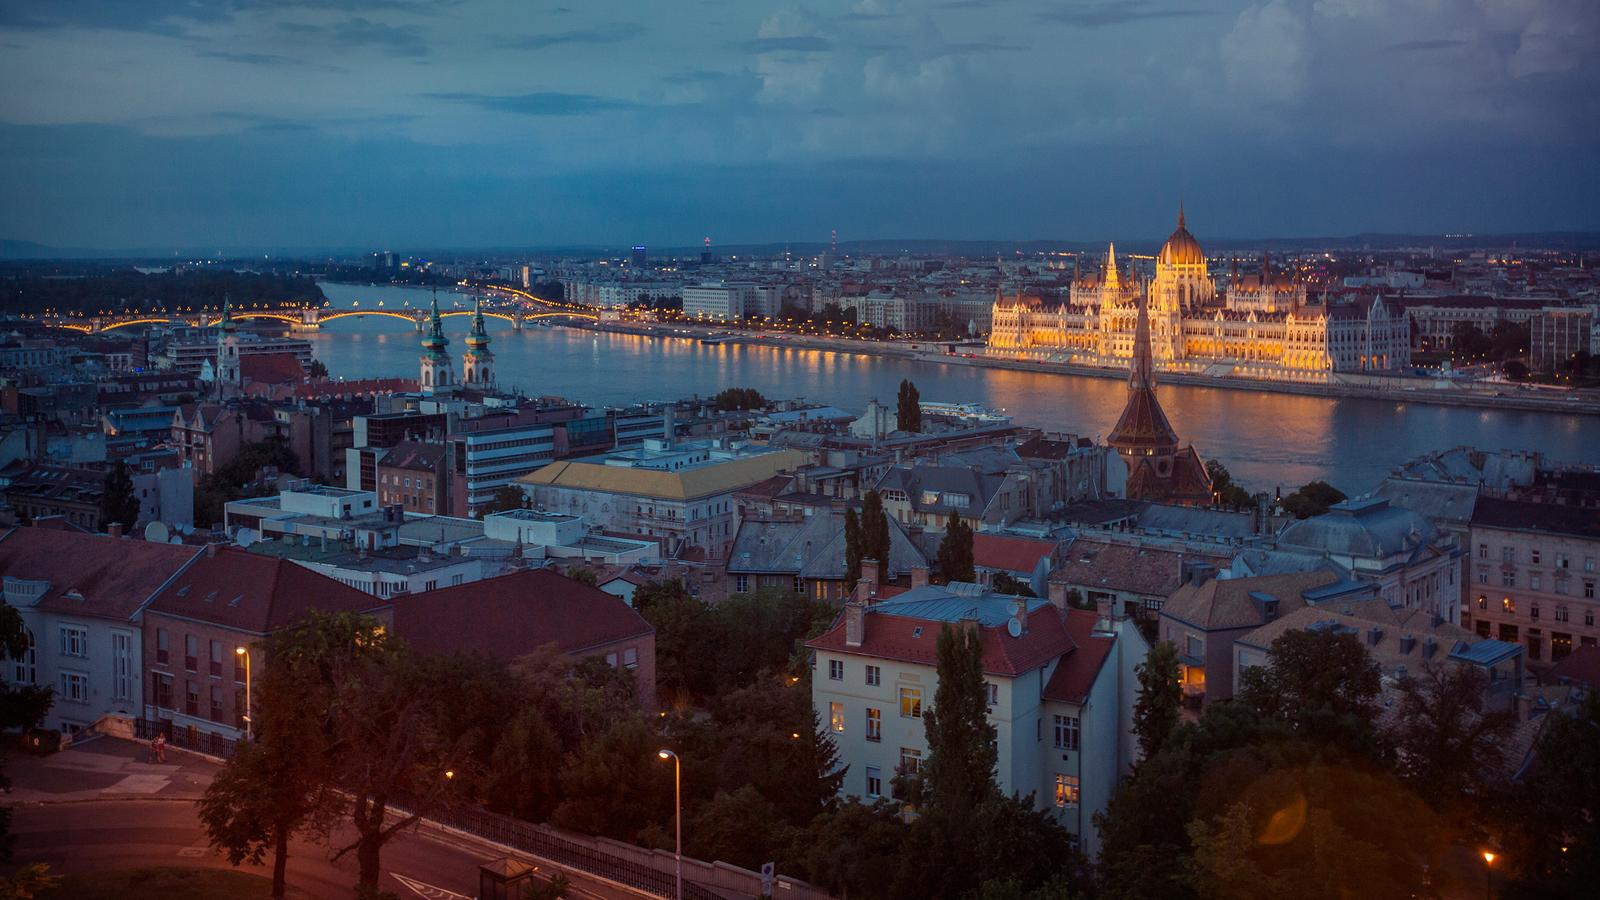 An amazing night time scene of downtown and the parliament building in Budapest, Hungary